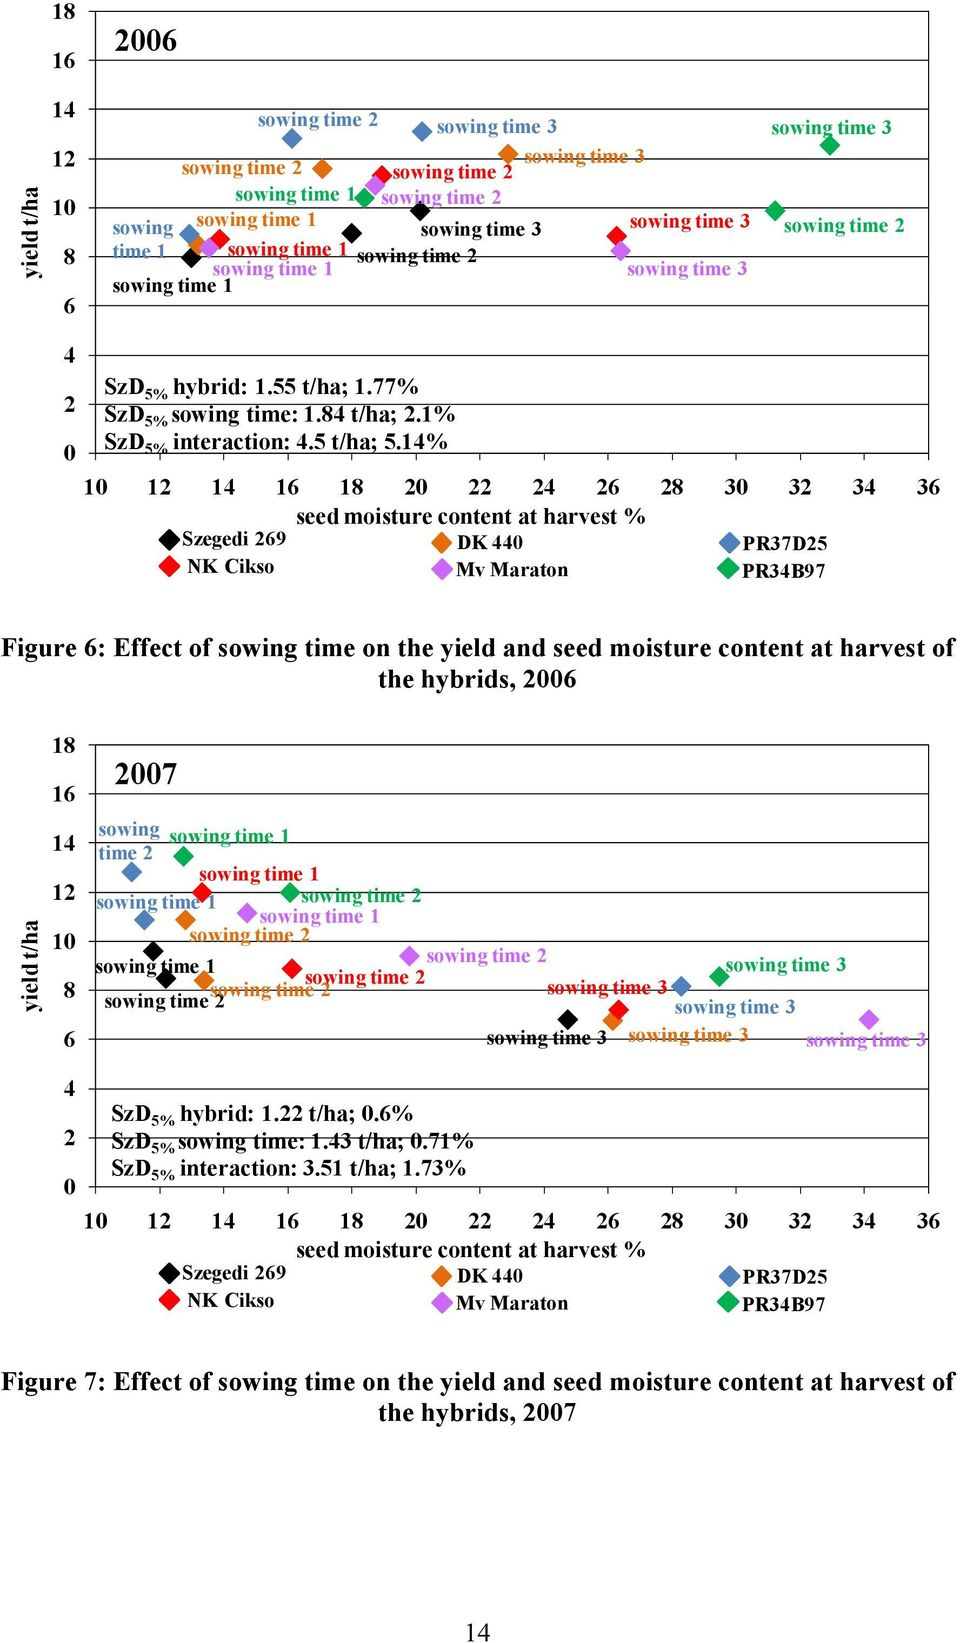 1% 1 1 1 1 1 3 3 3 3 seed moisture content at harvest % Szegedi 9 DK PR37D5 NK Cikso Mv Maraton PR3B97 Figure : Effect of sowing time on the yield and seed moisture content at harvest of the hybrids,